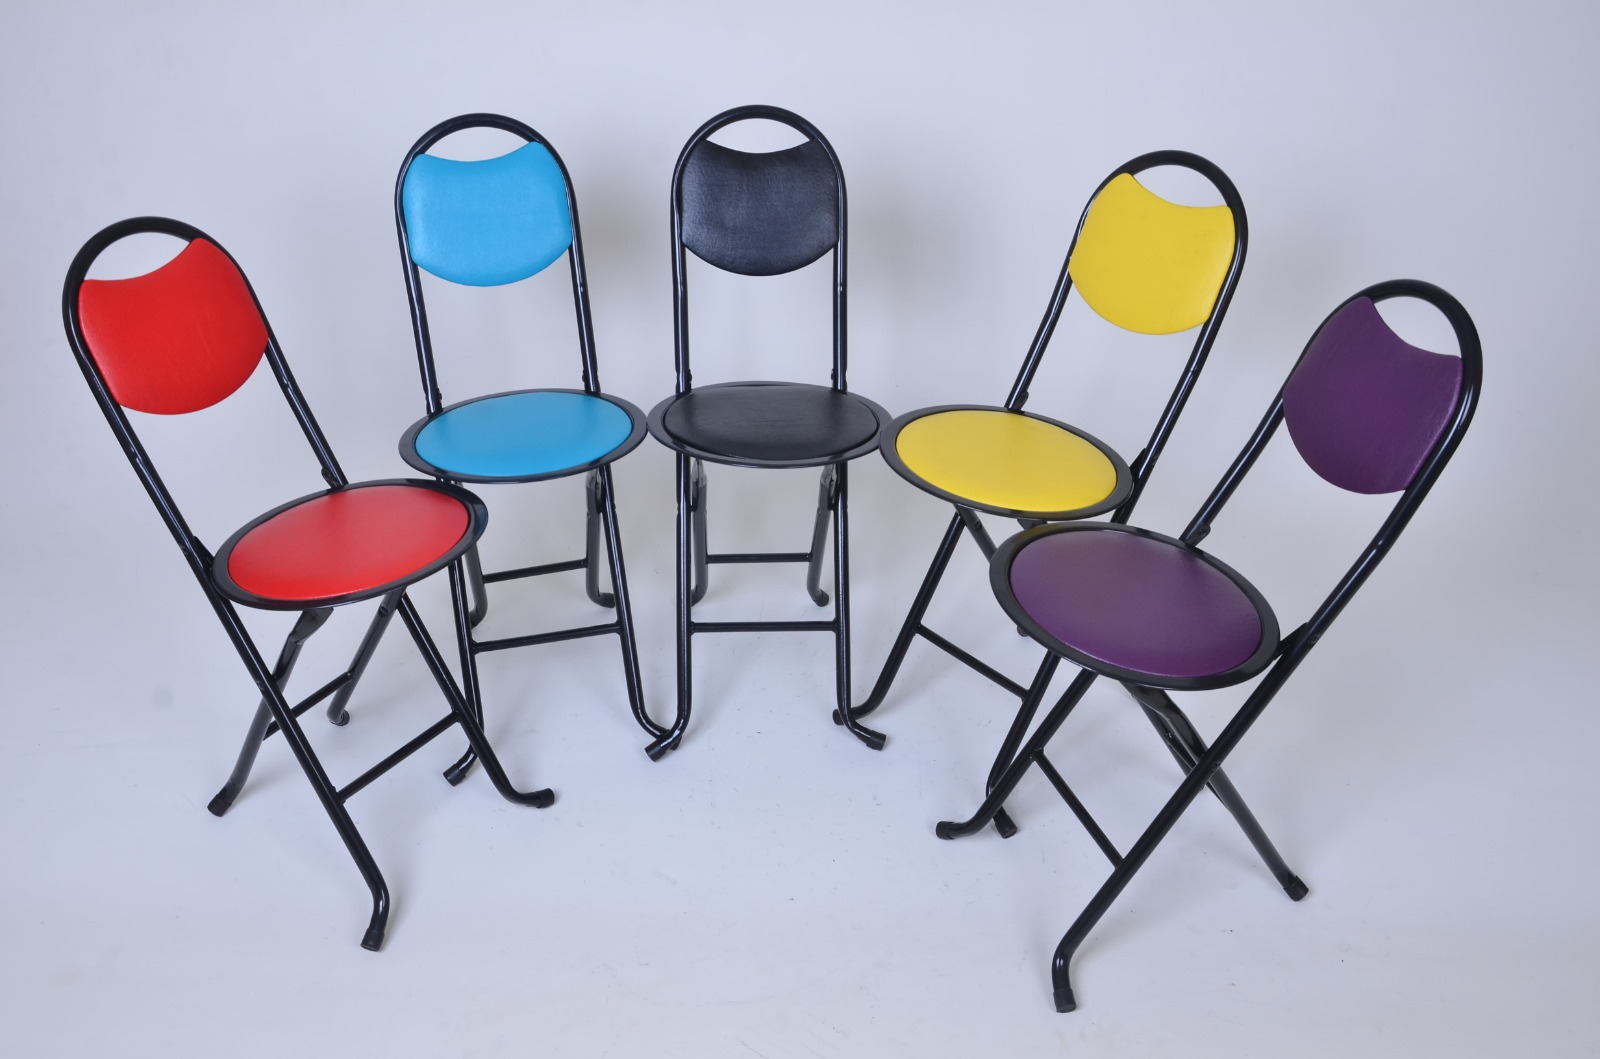 Chair Folding,Balcony,kitchen,may Execute,fit In Car Trunk,suitable For Picnic And Camping